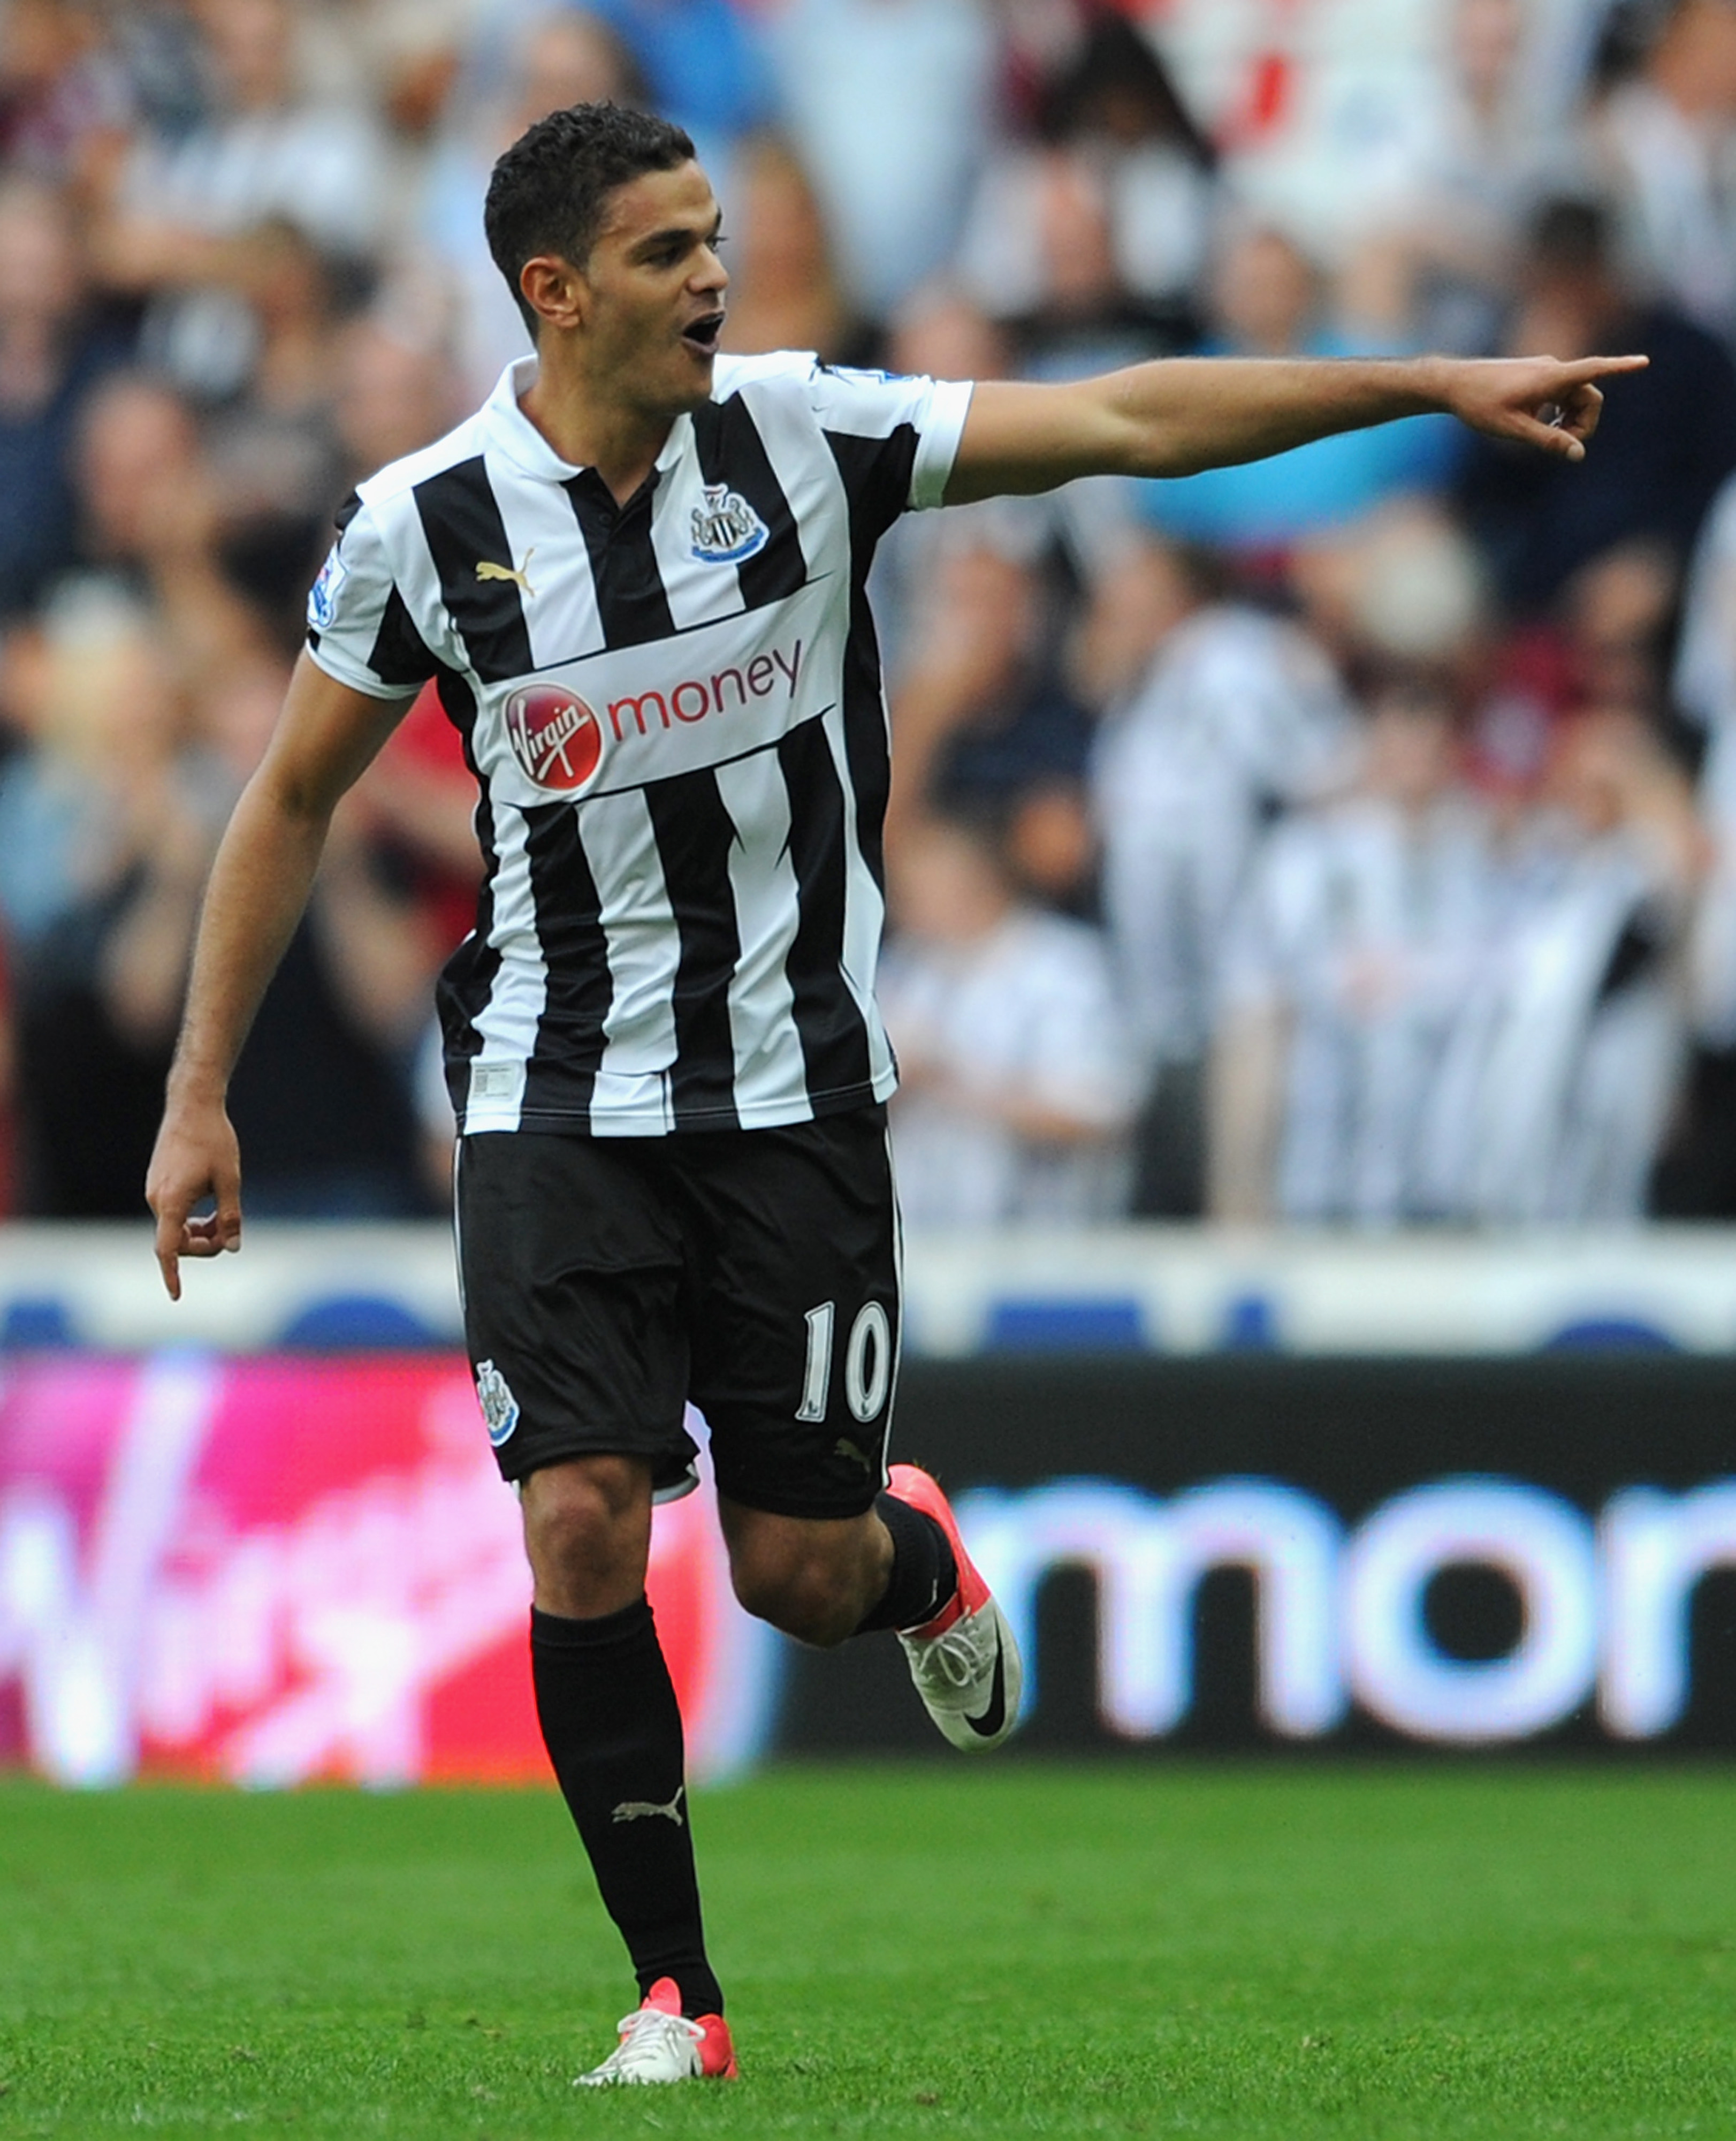 Newcastle scored their second goal Saturday after Hatem Ben Arfa caused some trouble on a short corner.  Is the short corner a better percentage play than the traditional corner, or does it represent a wasted chance?